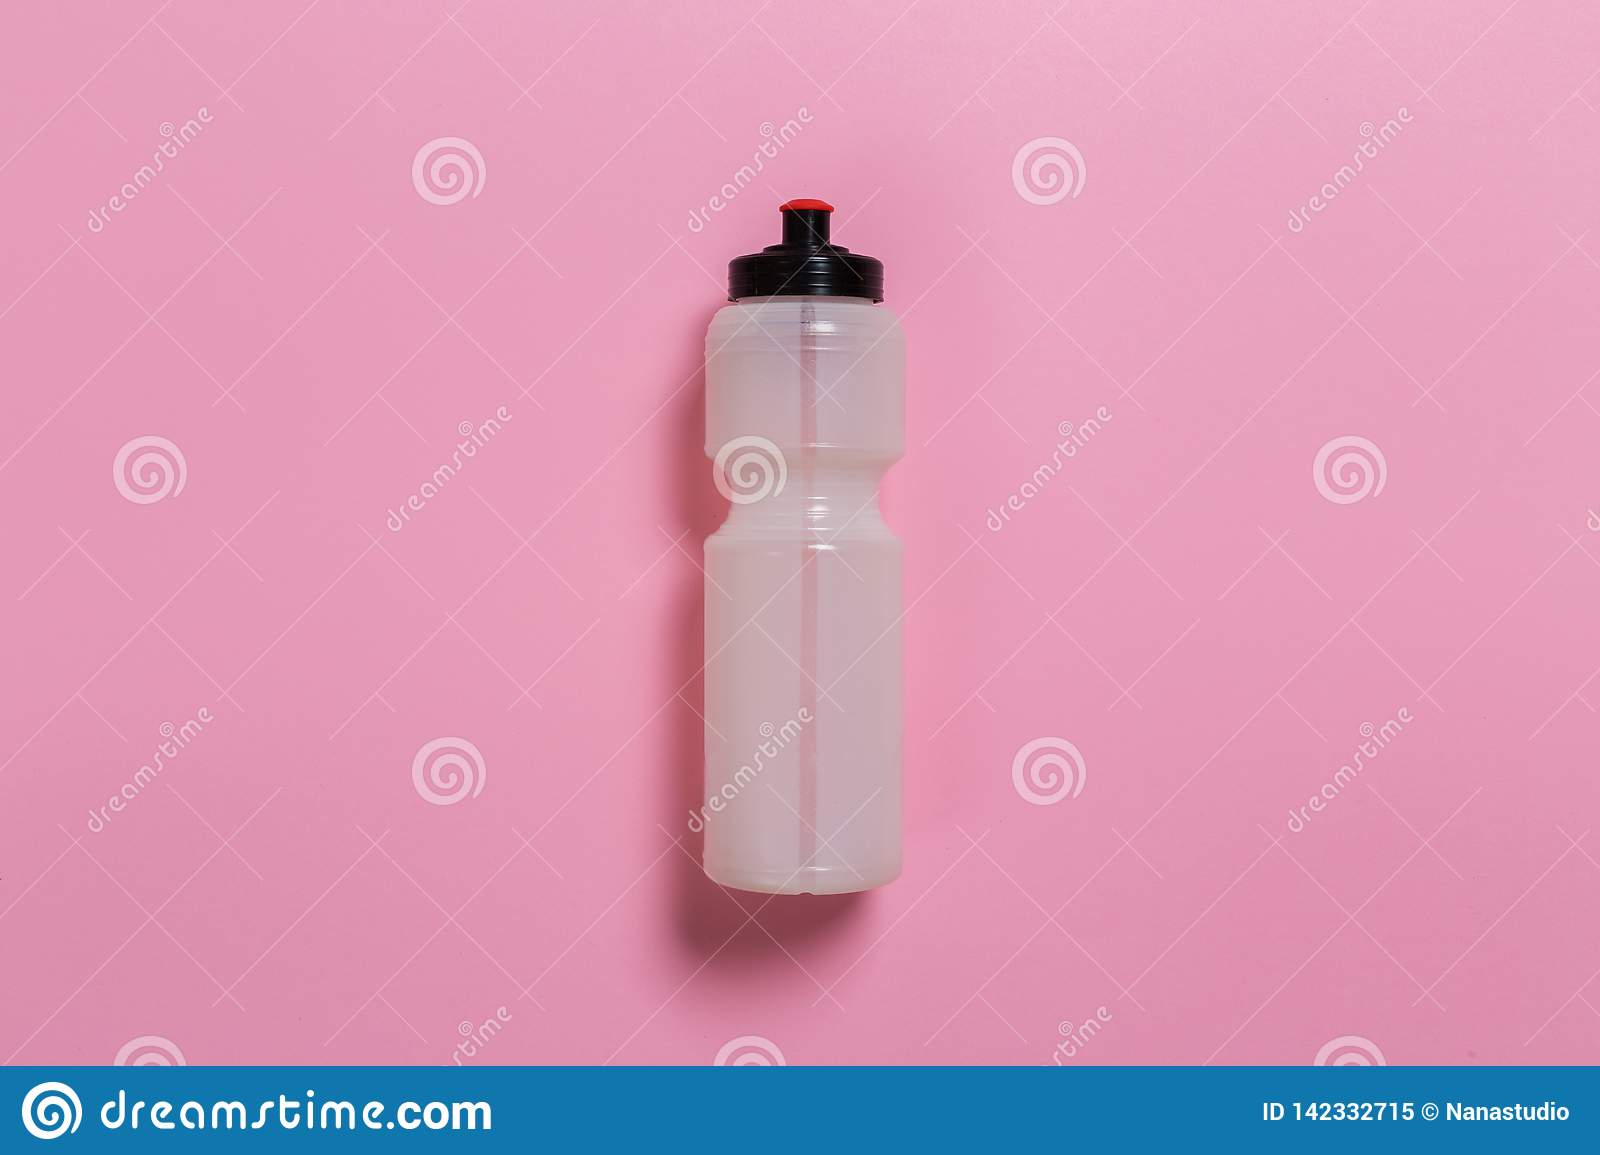 Styled photography of fitness equipment bottles on pink background